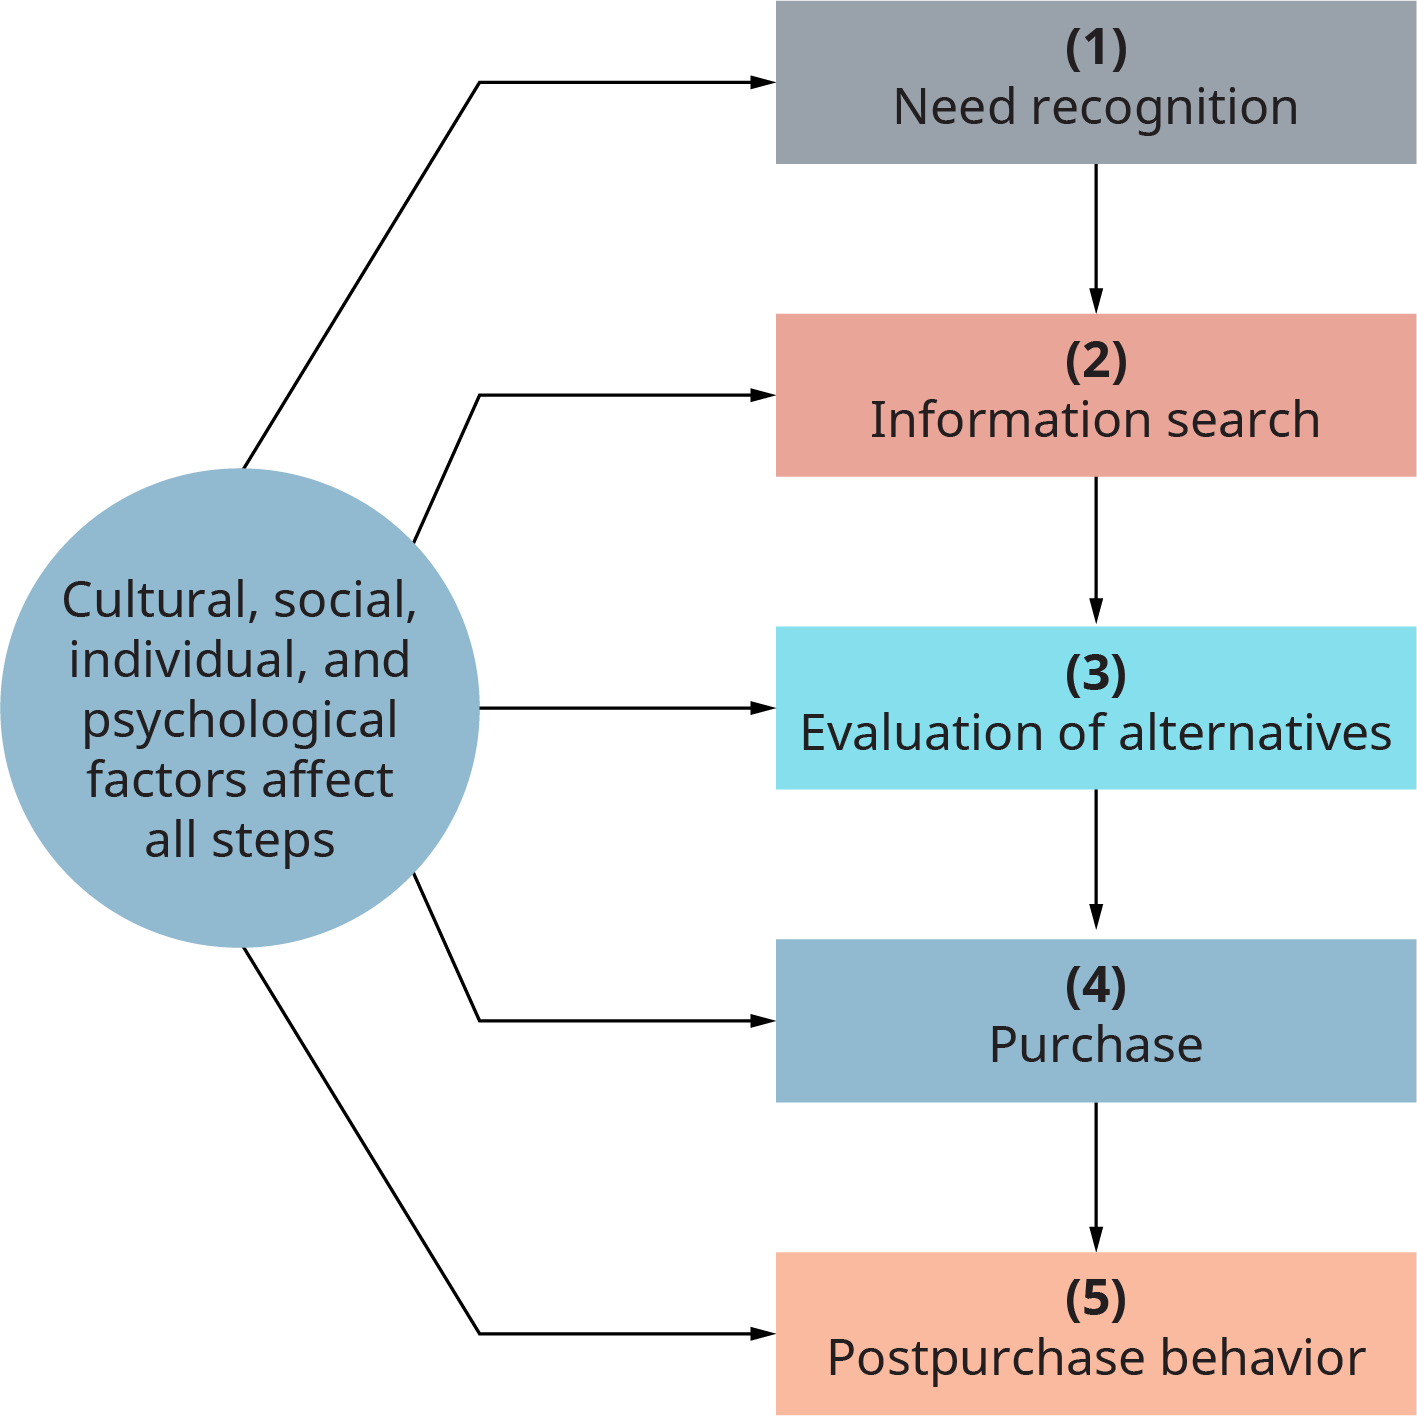 A circle has arrows connecting to a 5 step process. The circle is labeled as follows. Cultural, social, individual, and psychological factors affect all steps. Each step flows into the next. Step 1, need recognition. Step 2, information search. Step 3, evaluation of alternatives. Step 4, purchase. Step 5, post purchase behavior.